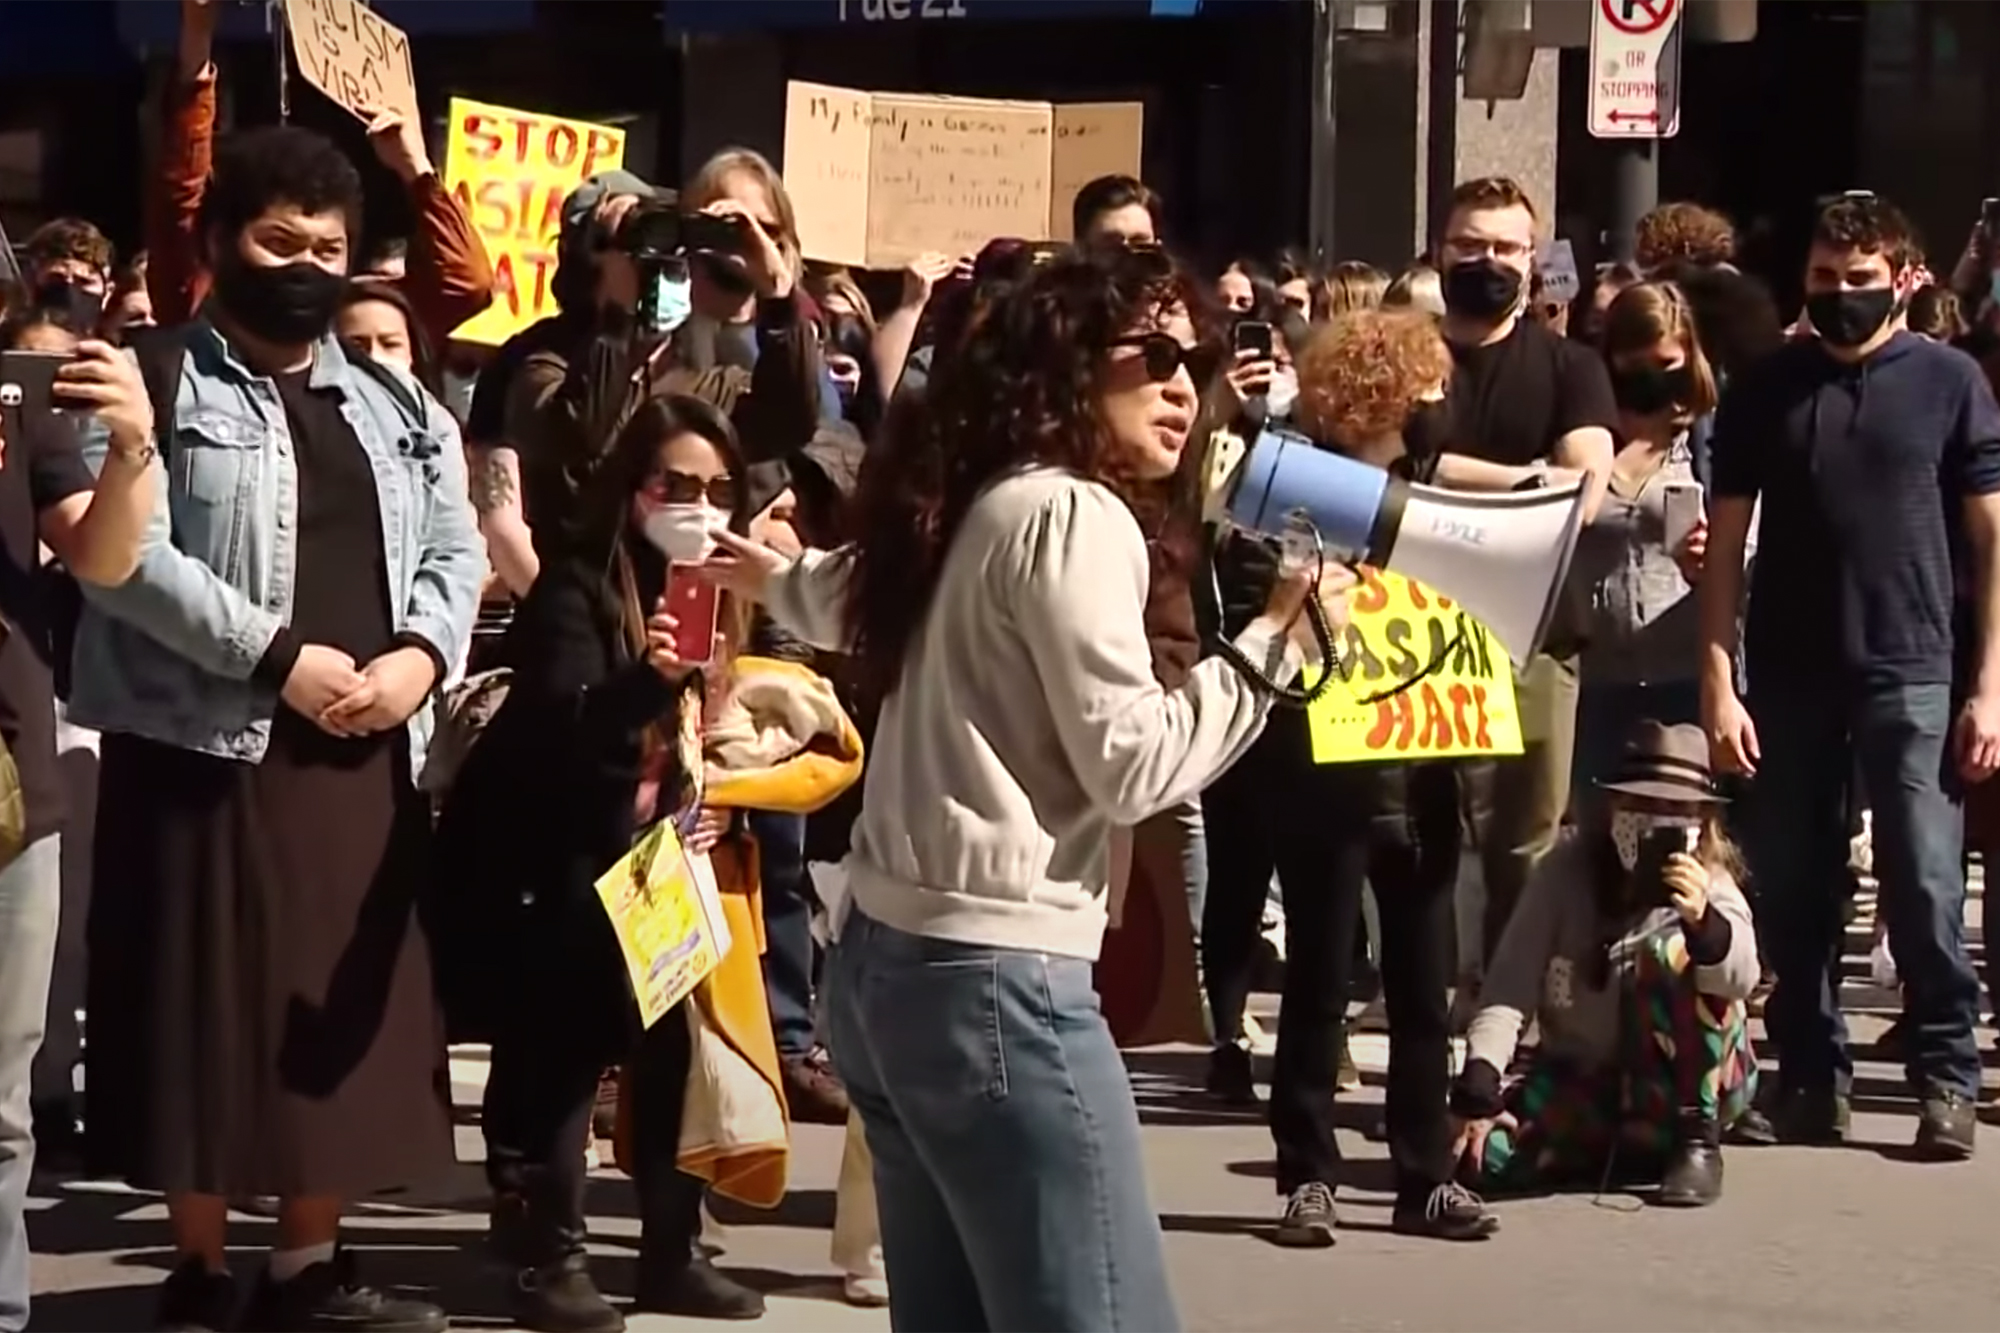 Sandra Oh speaks at a Stop Asian Hate rally